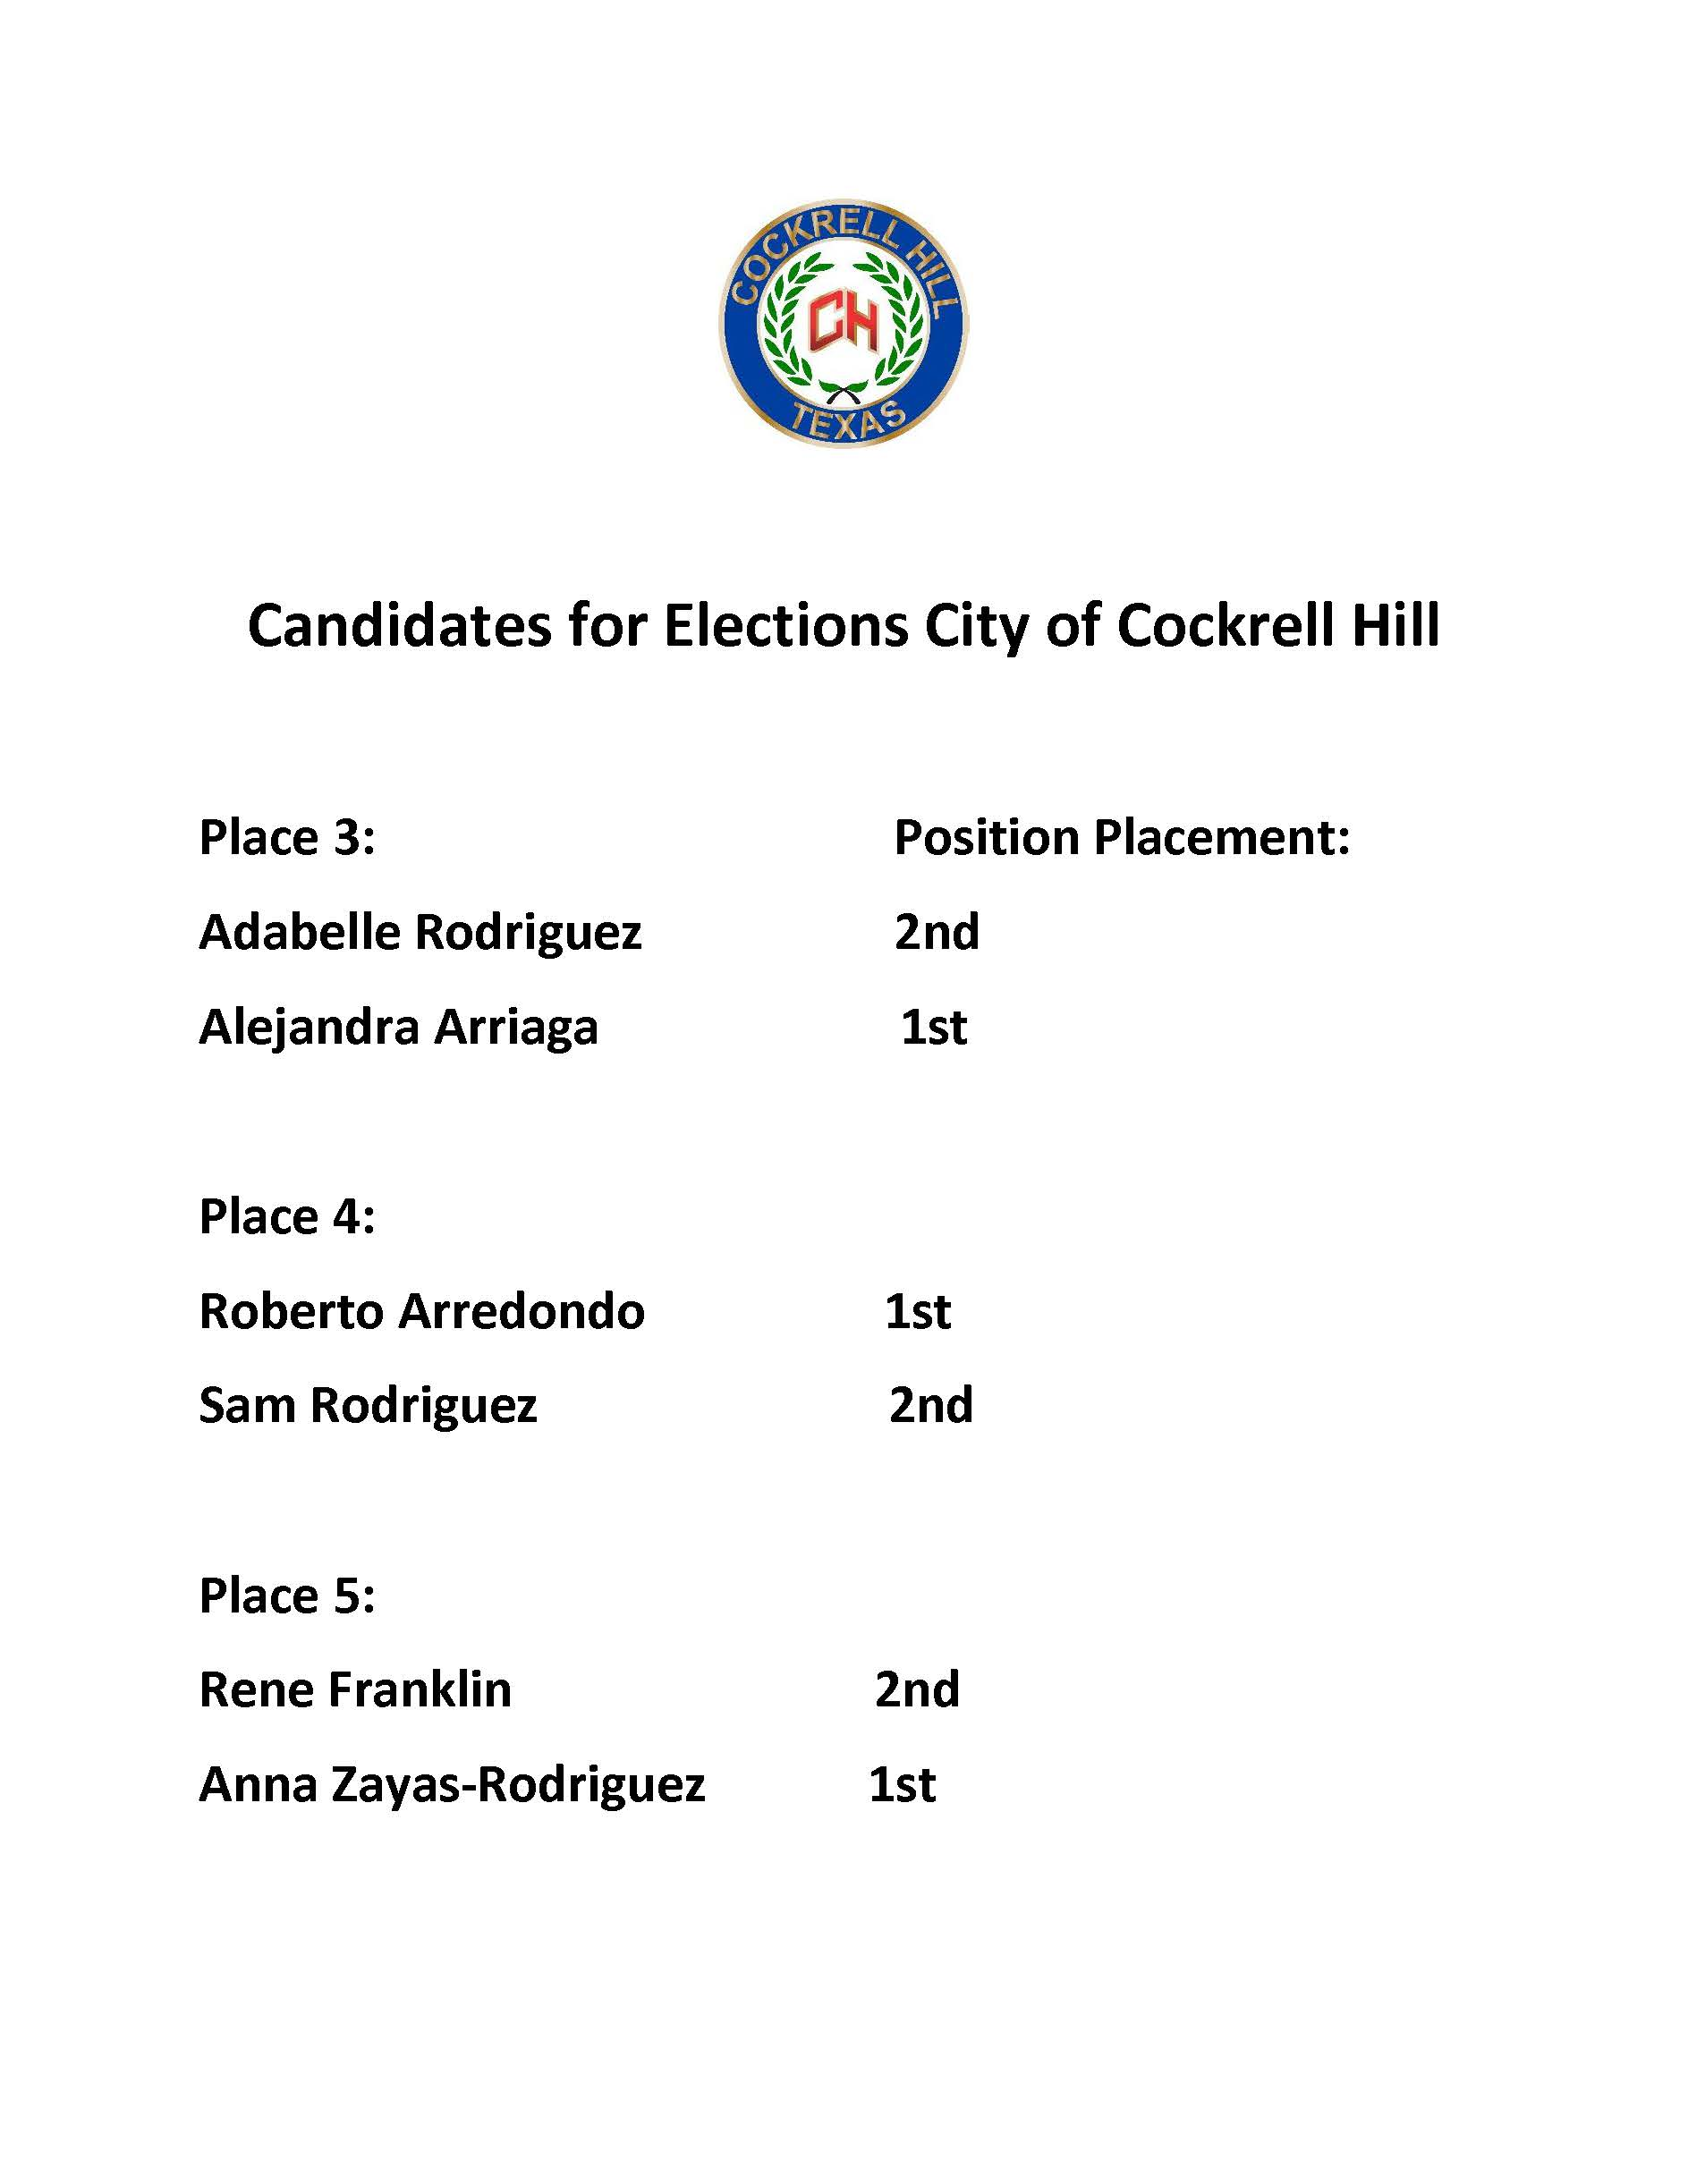 May 2021 Candidates for Elections City of Cockrell Hill